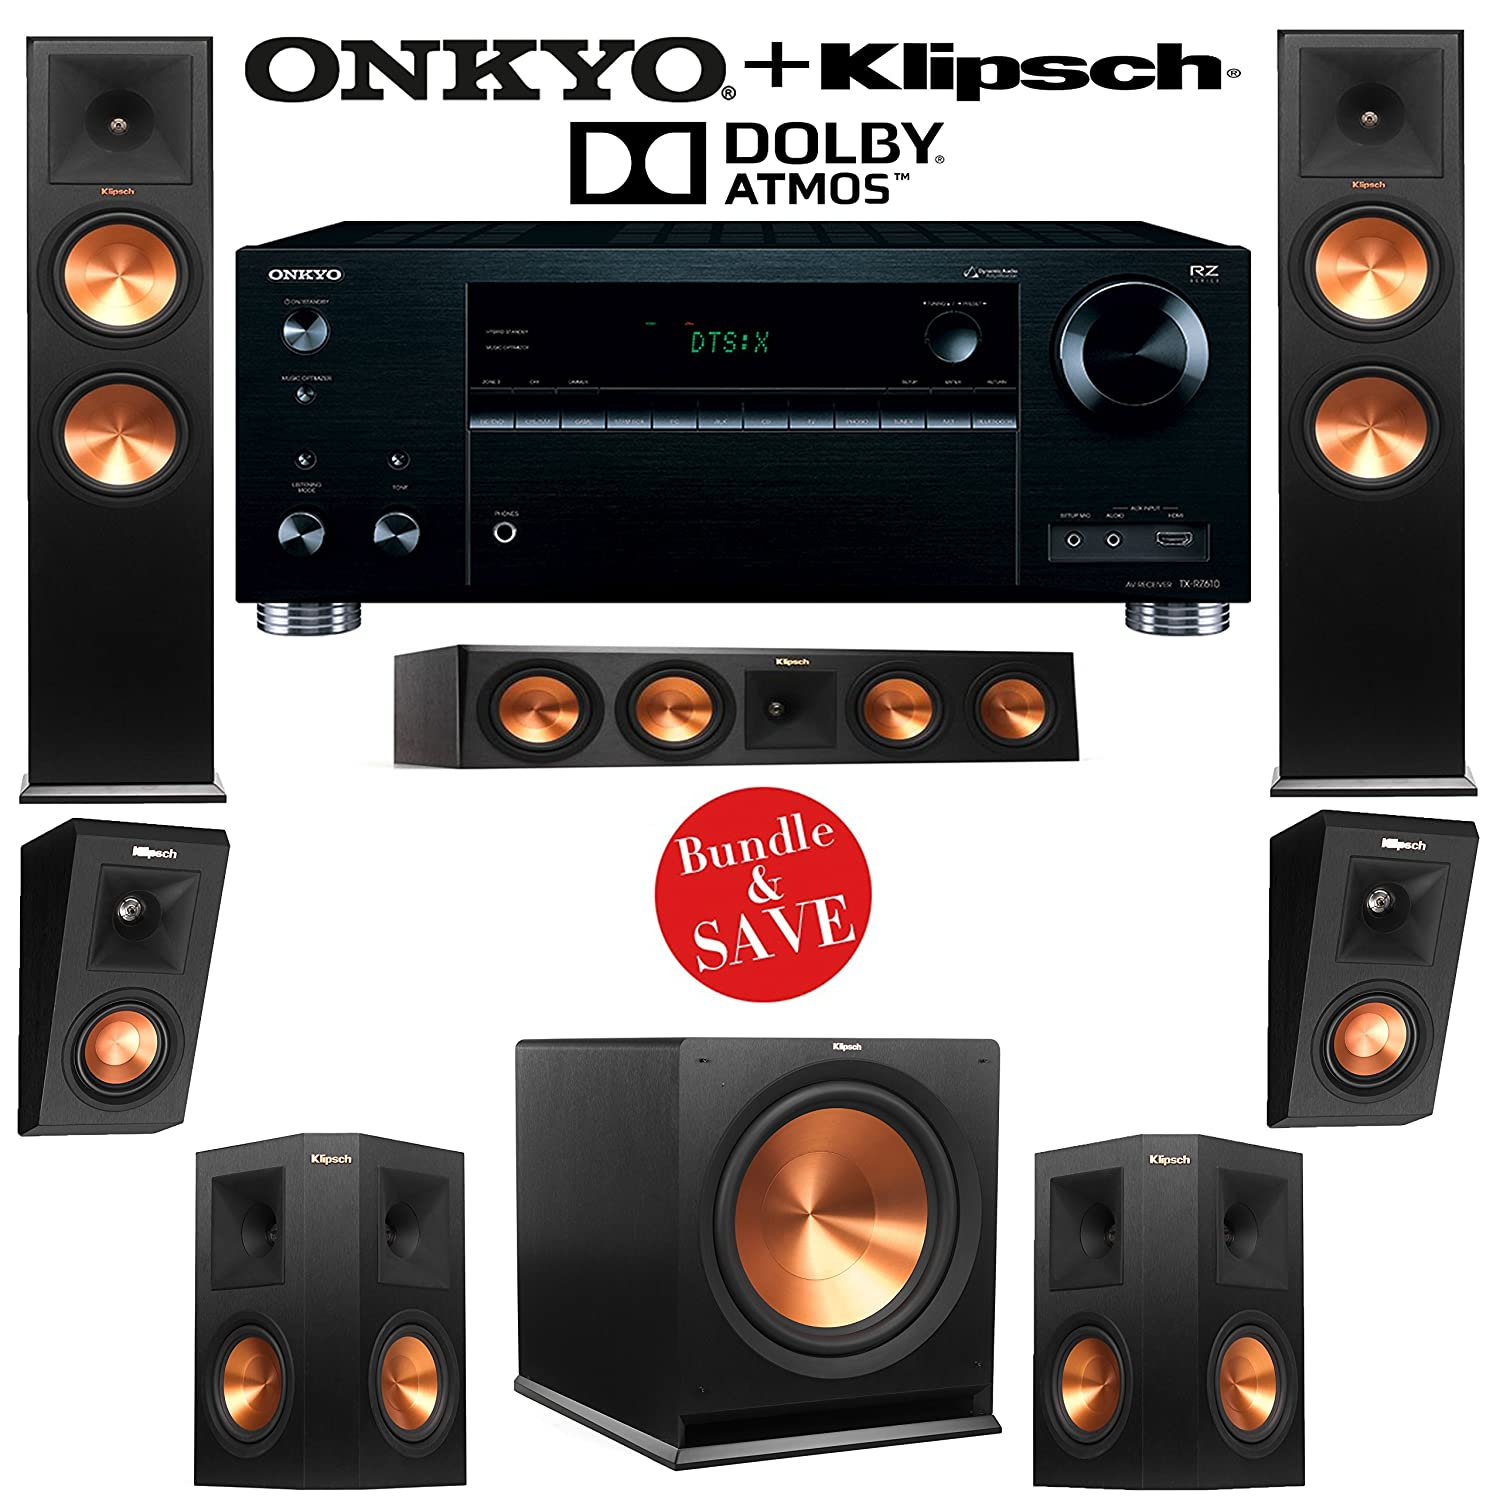 klipsch home theater speakers. amazon.com: klipsch rp-280f 5.1.2 dolby atmos home theater system with onkyo tx-rz710 7.2-ch network a/v receiver: audio \u0026 speakers r